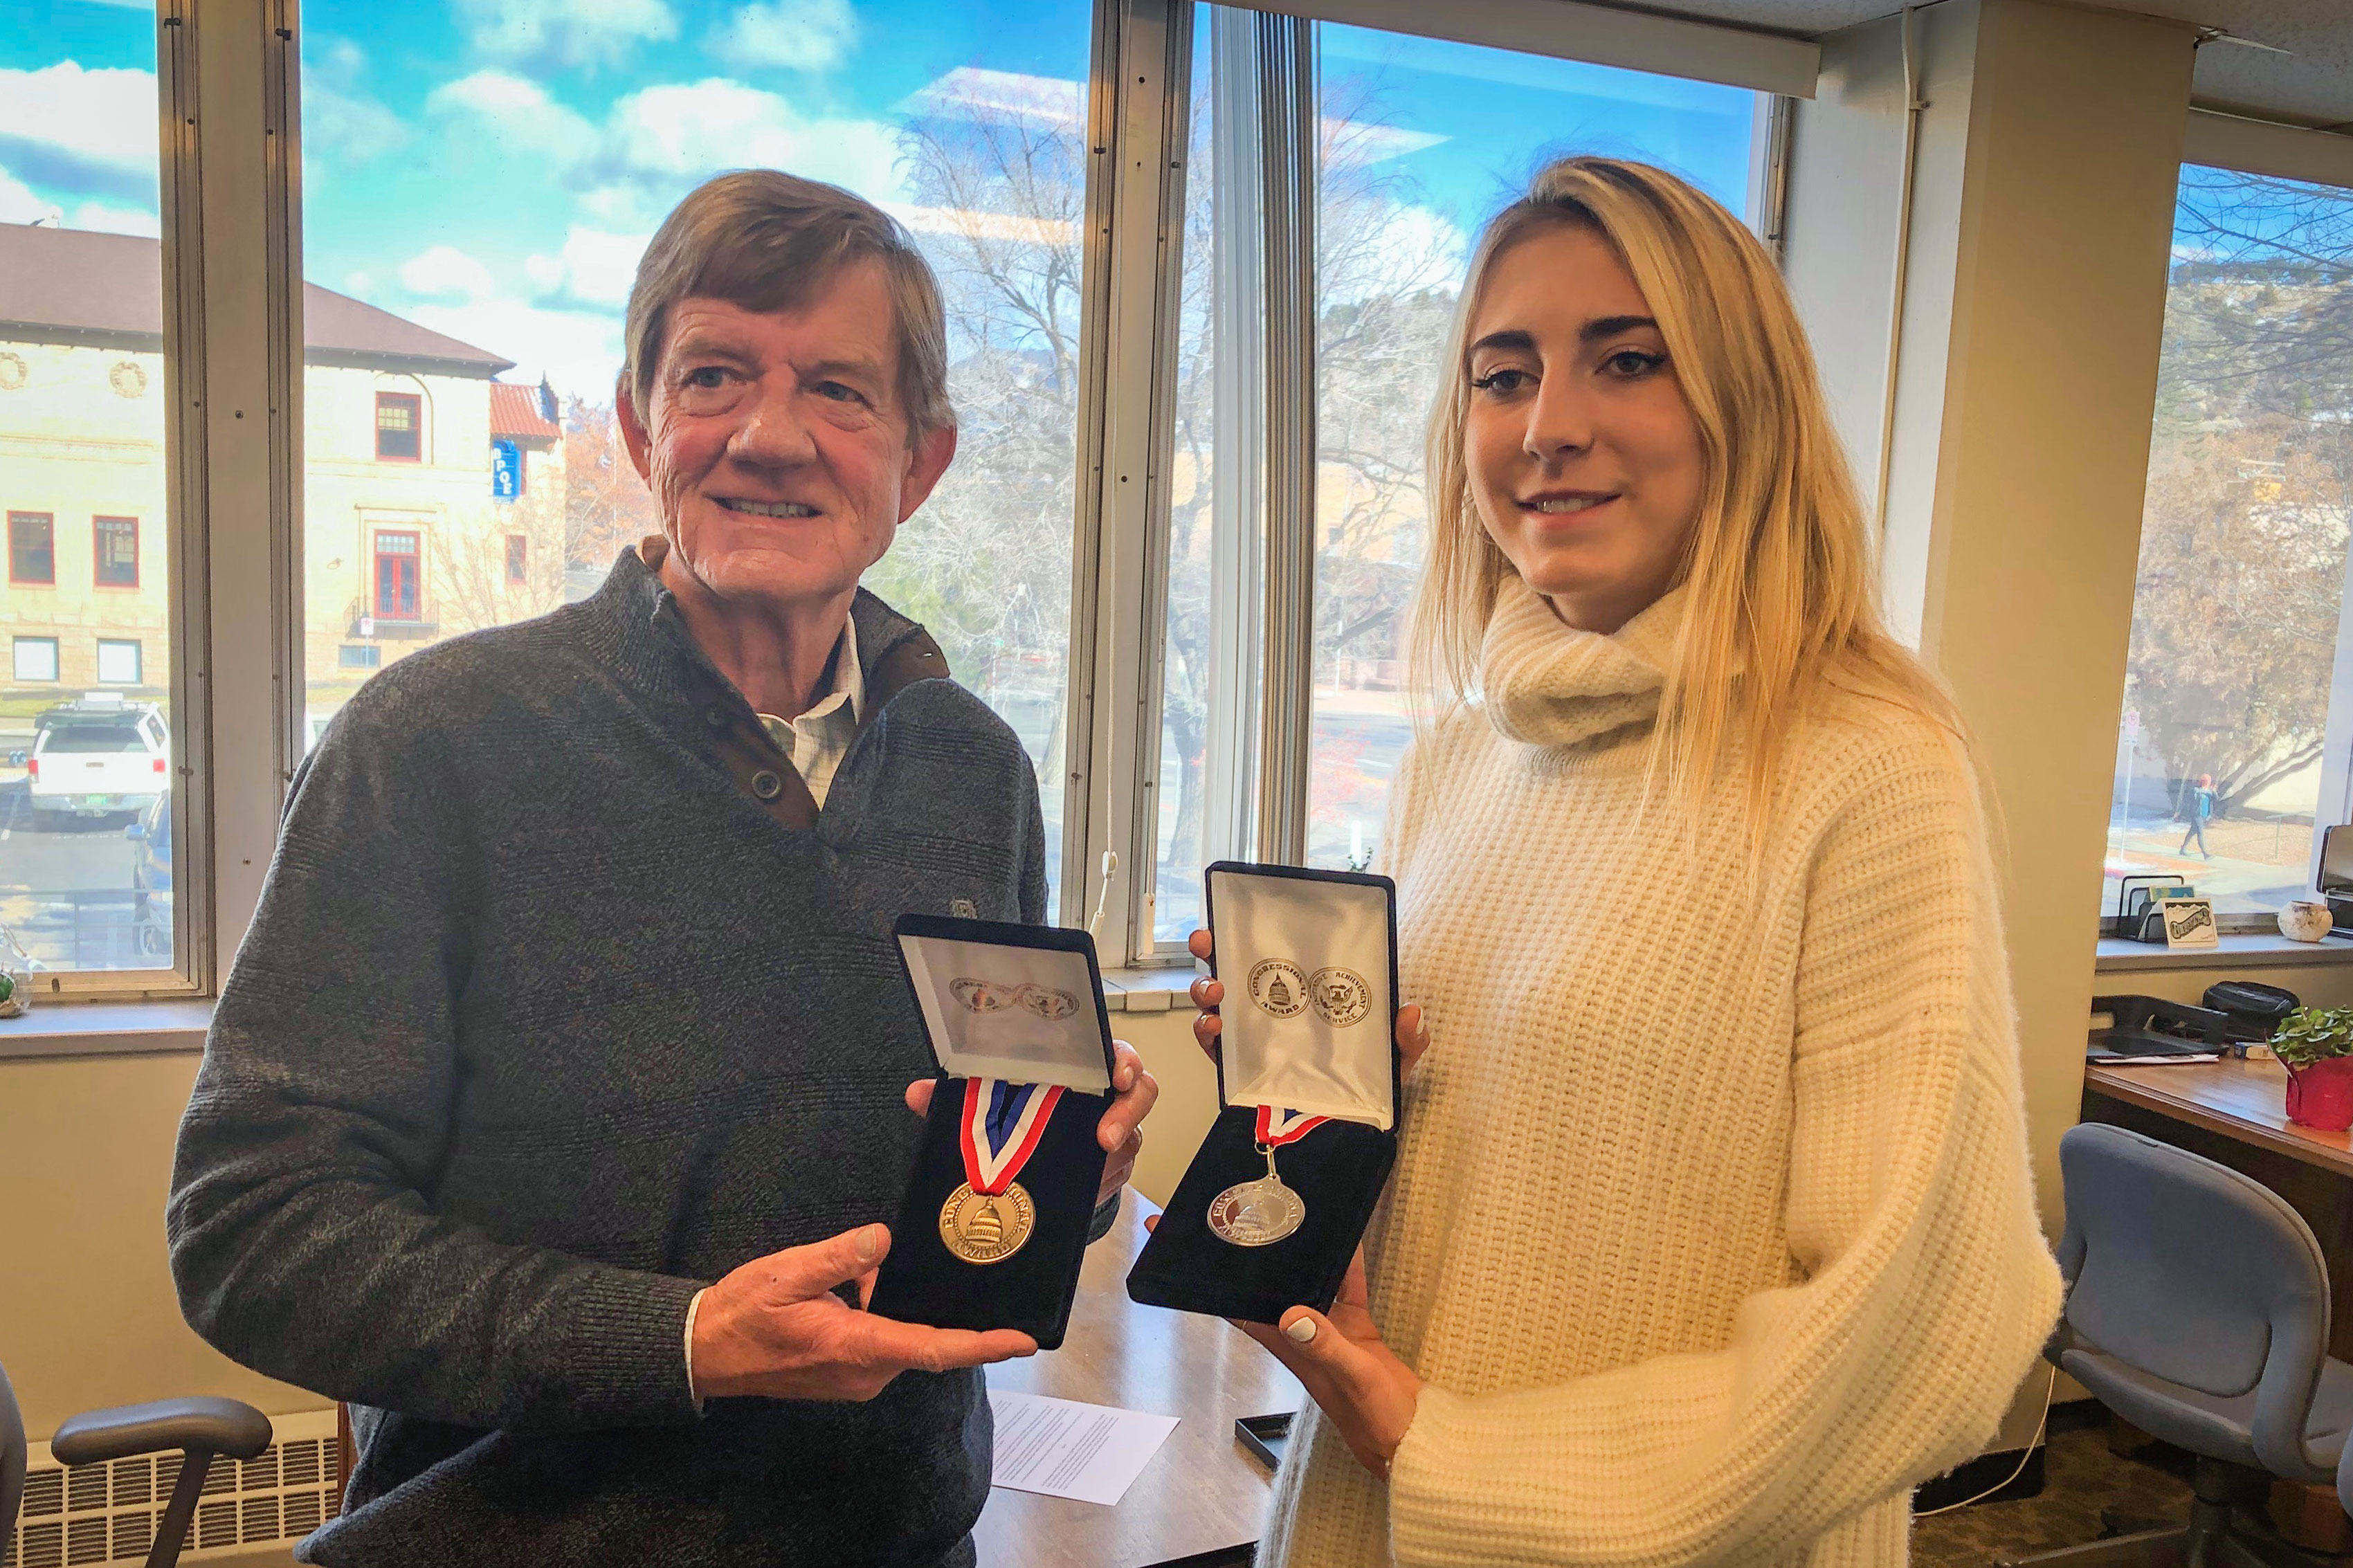 Republican Rep. Scott Tipton presents two Congressional Awards to Soleil Gaylord in his Durango, Colo., office, Nov. 26, 2019.